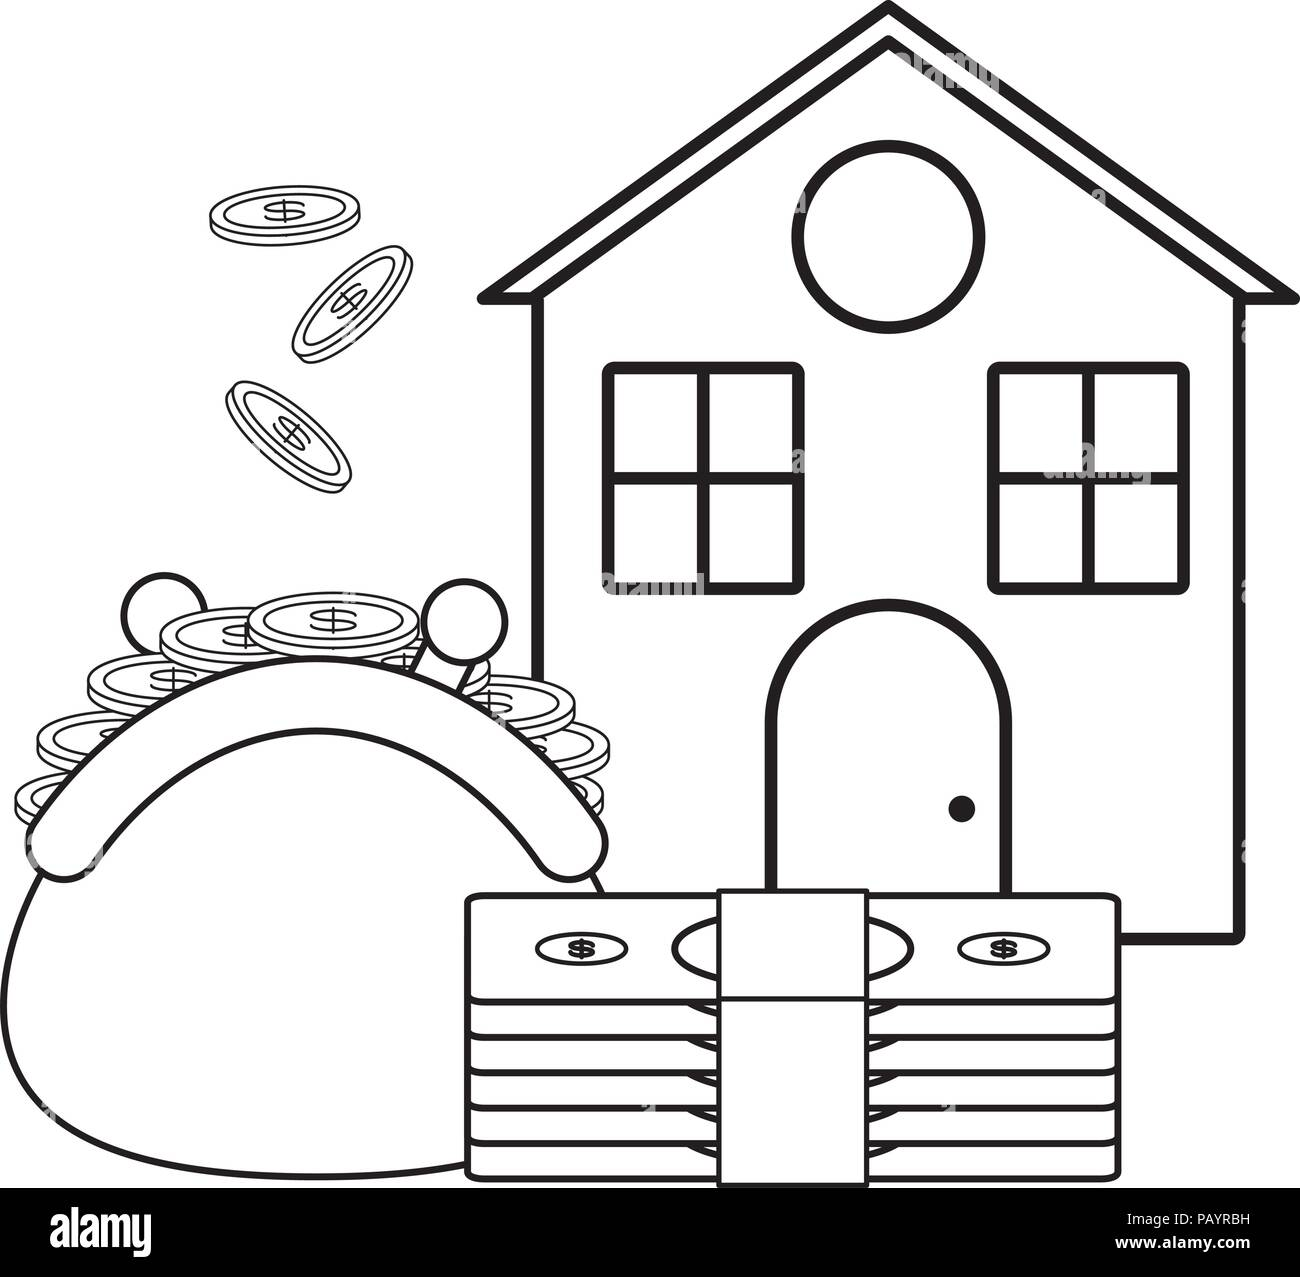 house with purse with coins and bills icon over white background, vector illustration - Stock Image